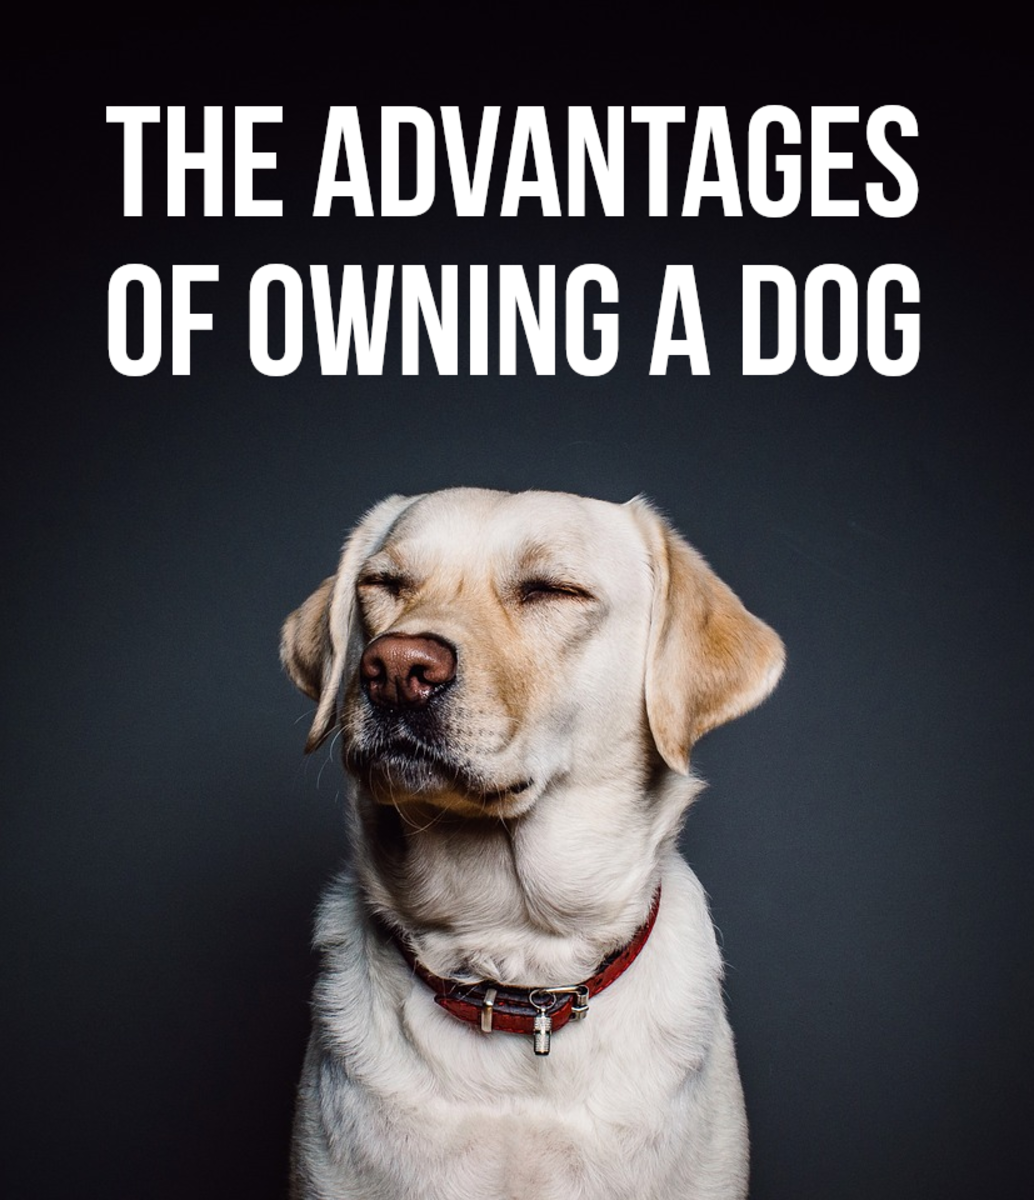 If you want to find out the main positives of owning a pet dog, read on...